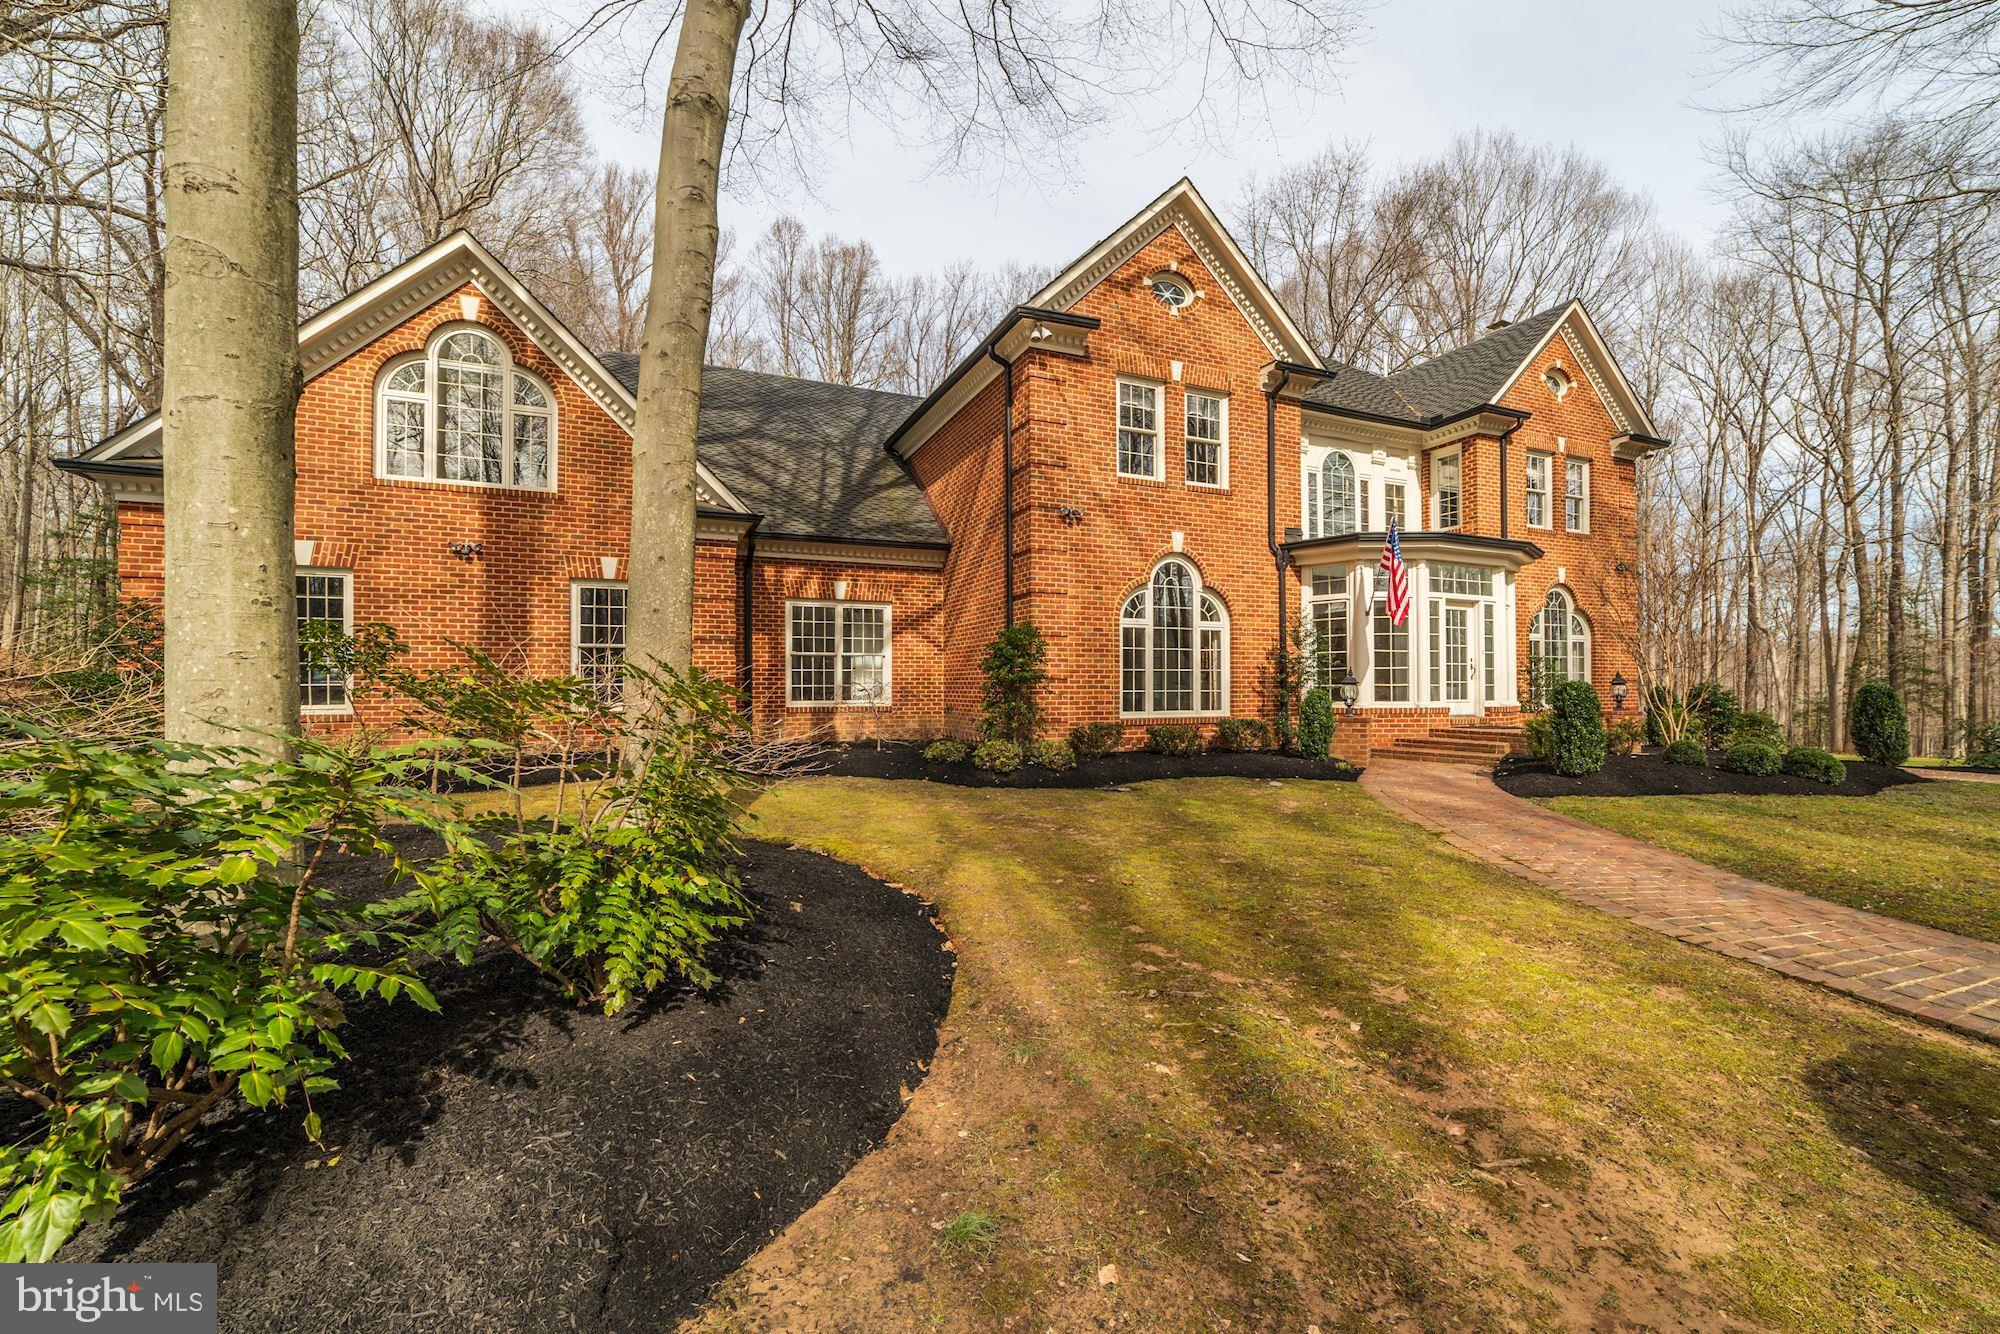 11102 DEVEREUX STATION LANE, FAIRFAX STATION, VA 22039